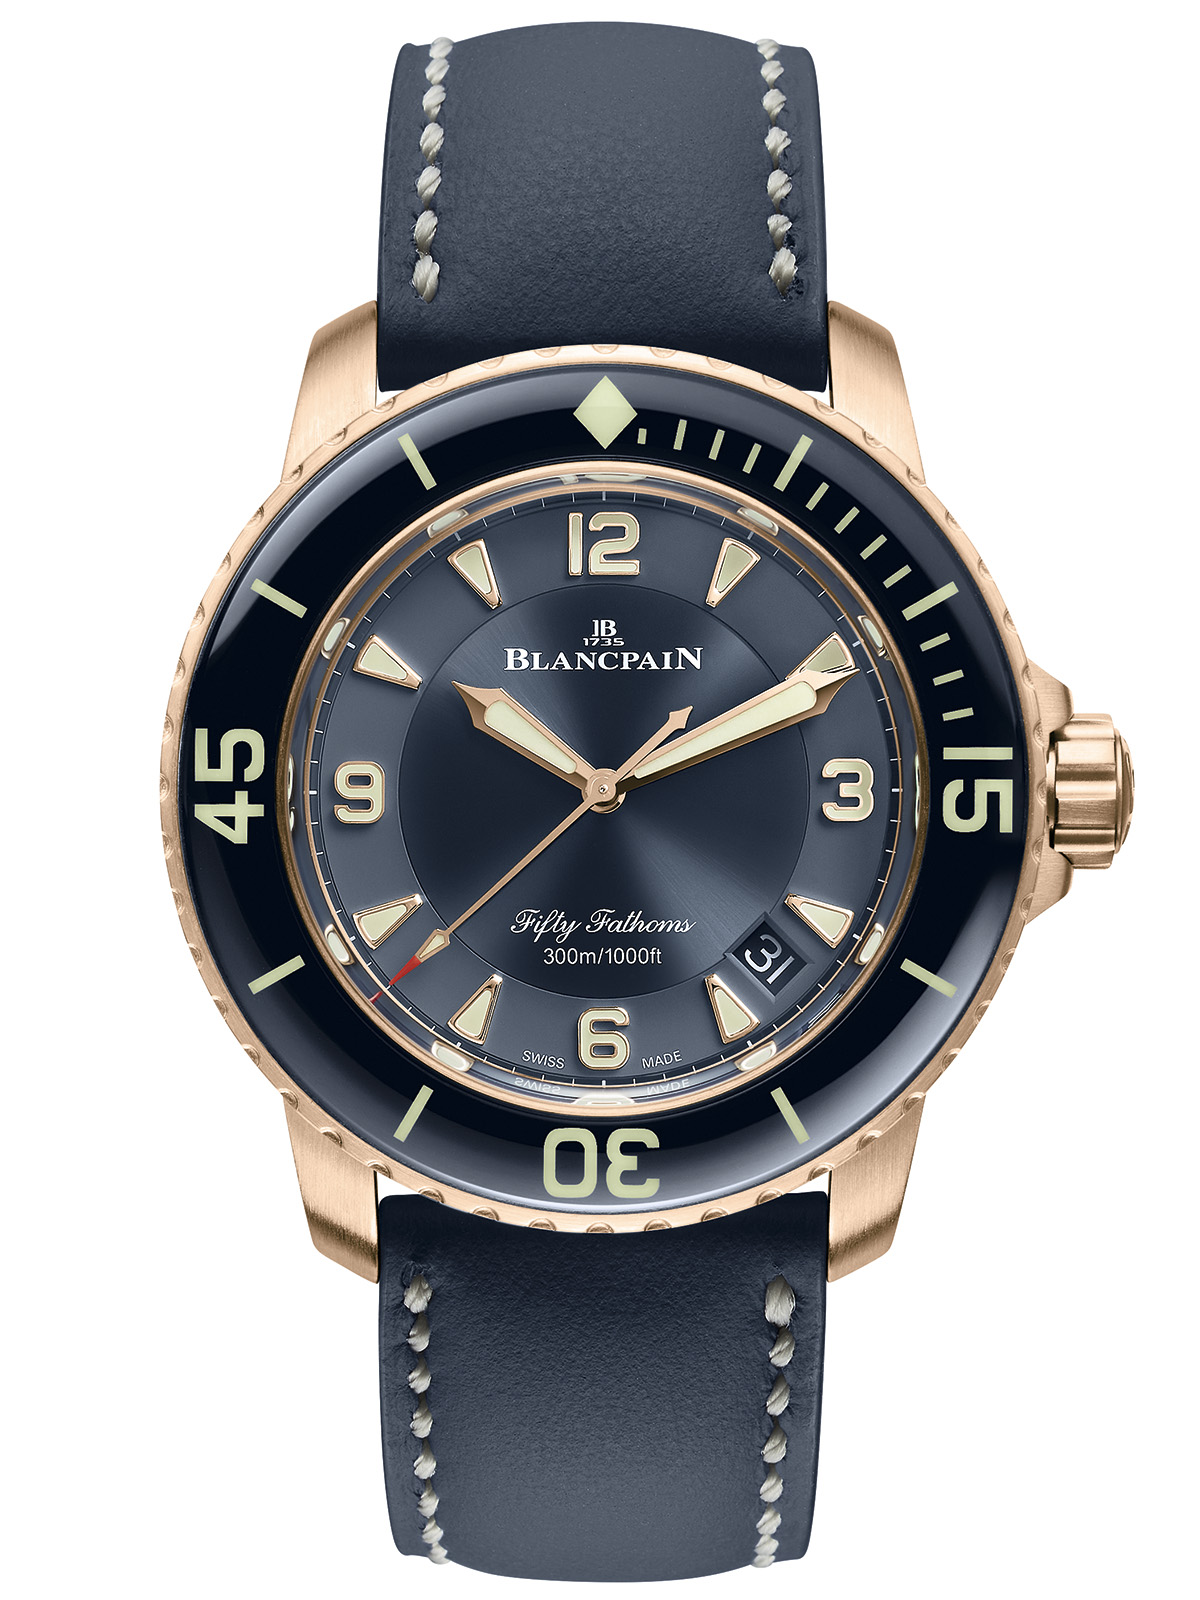 Blancpain Fifty Fathoms Automatique (Ceramic dial)